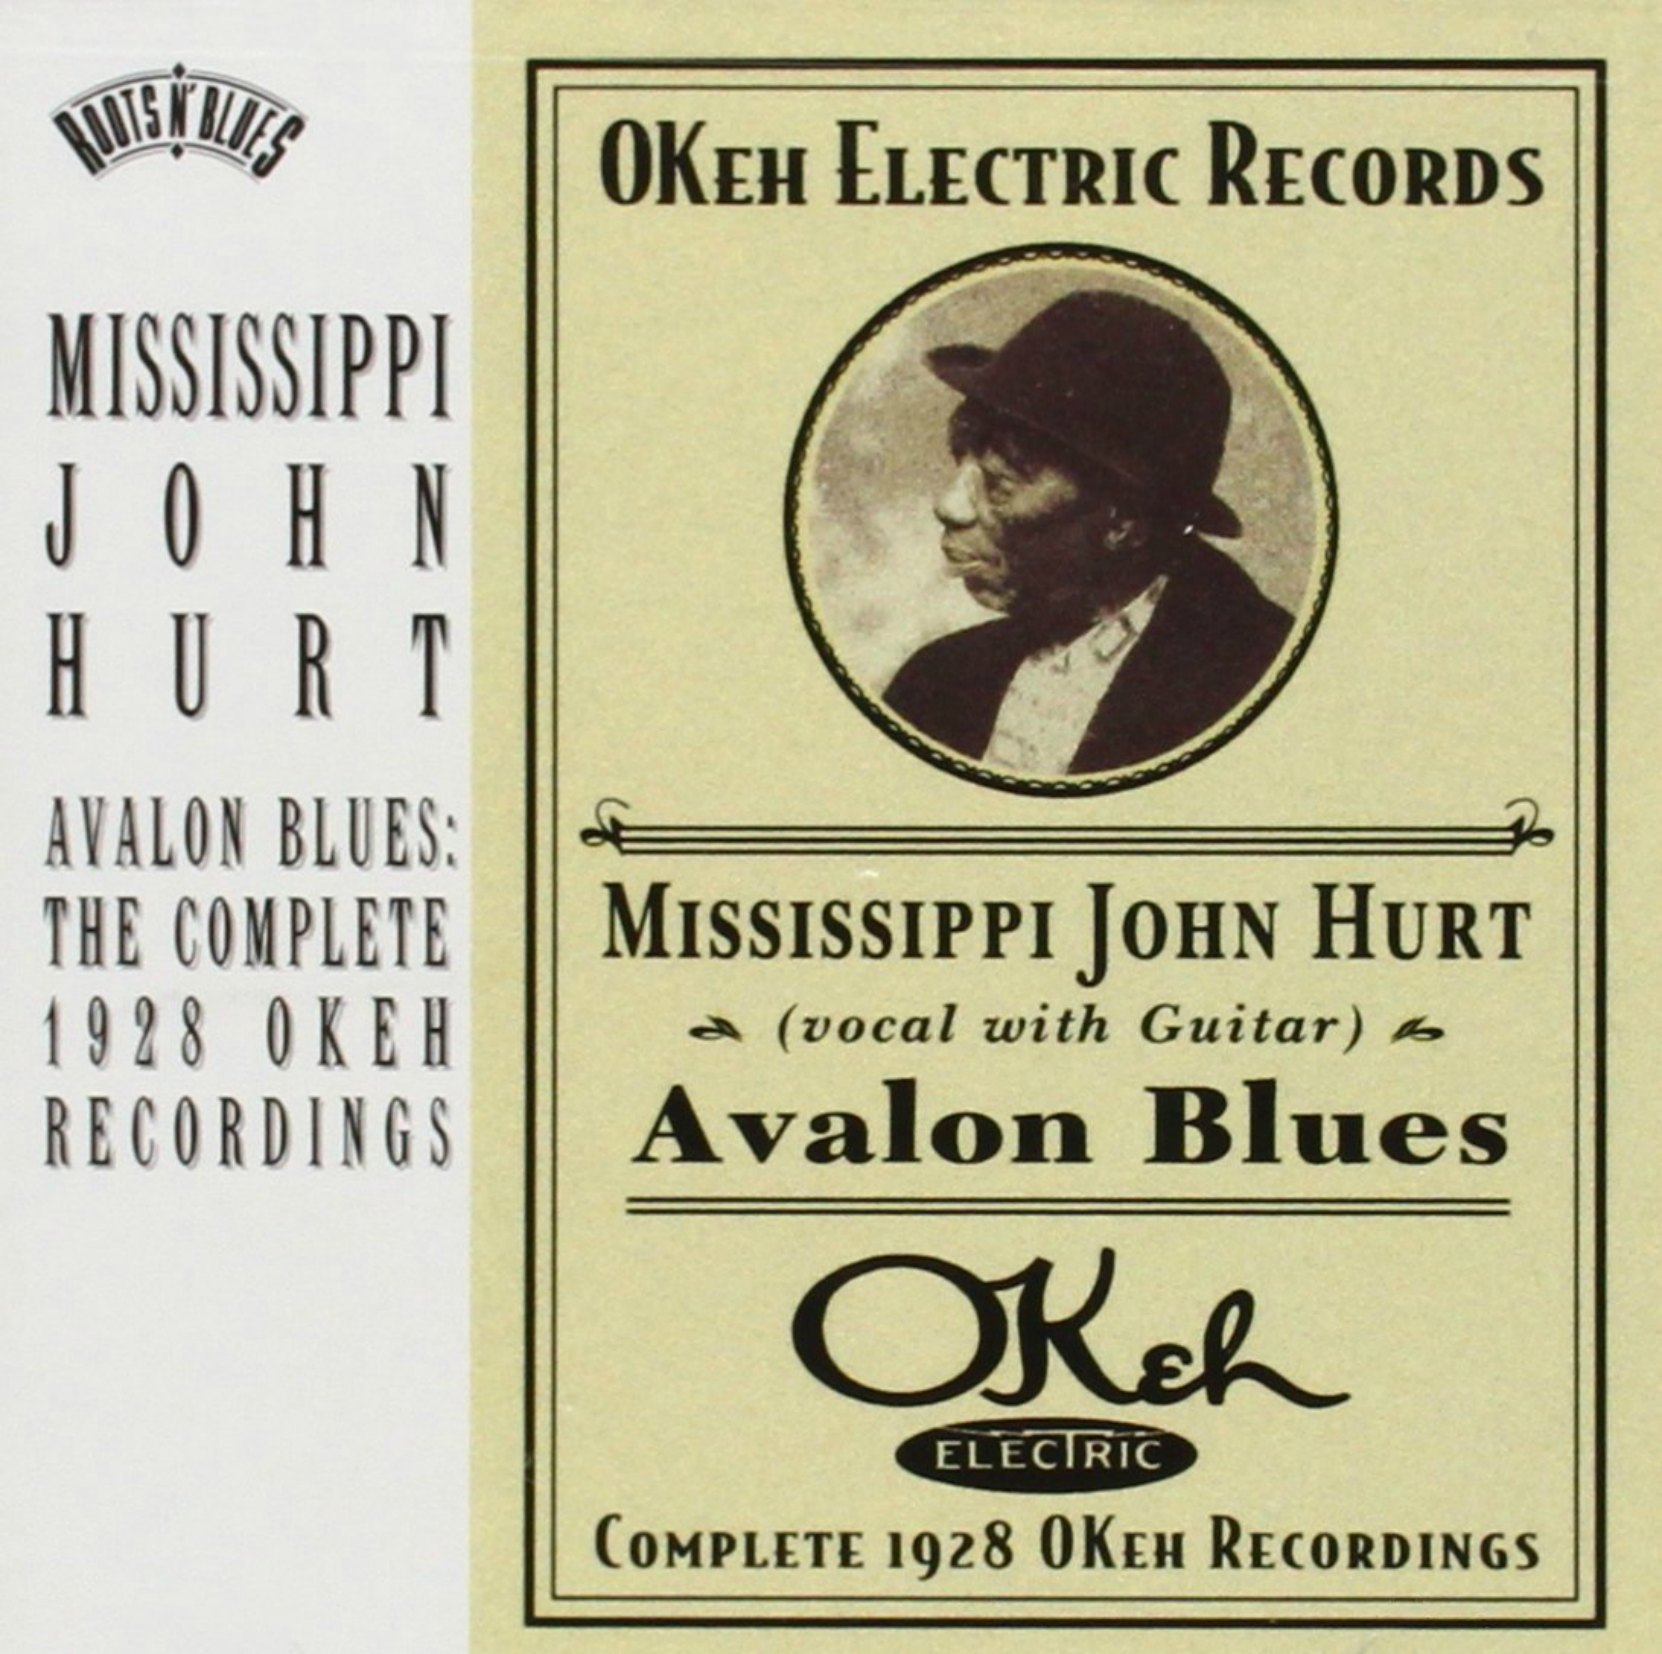 CD cover, Avalon Blues - The Complete 1928 Okeh Recordings, by Mississippi John Hurt